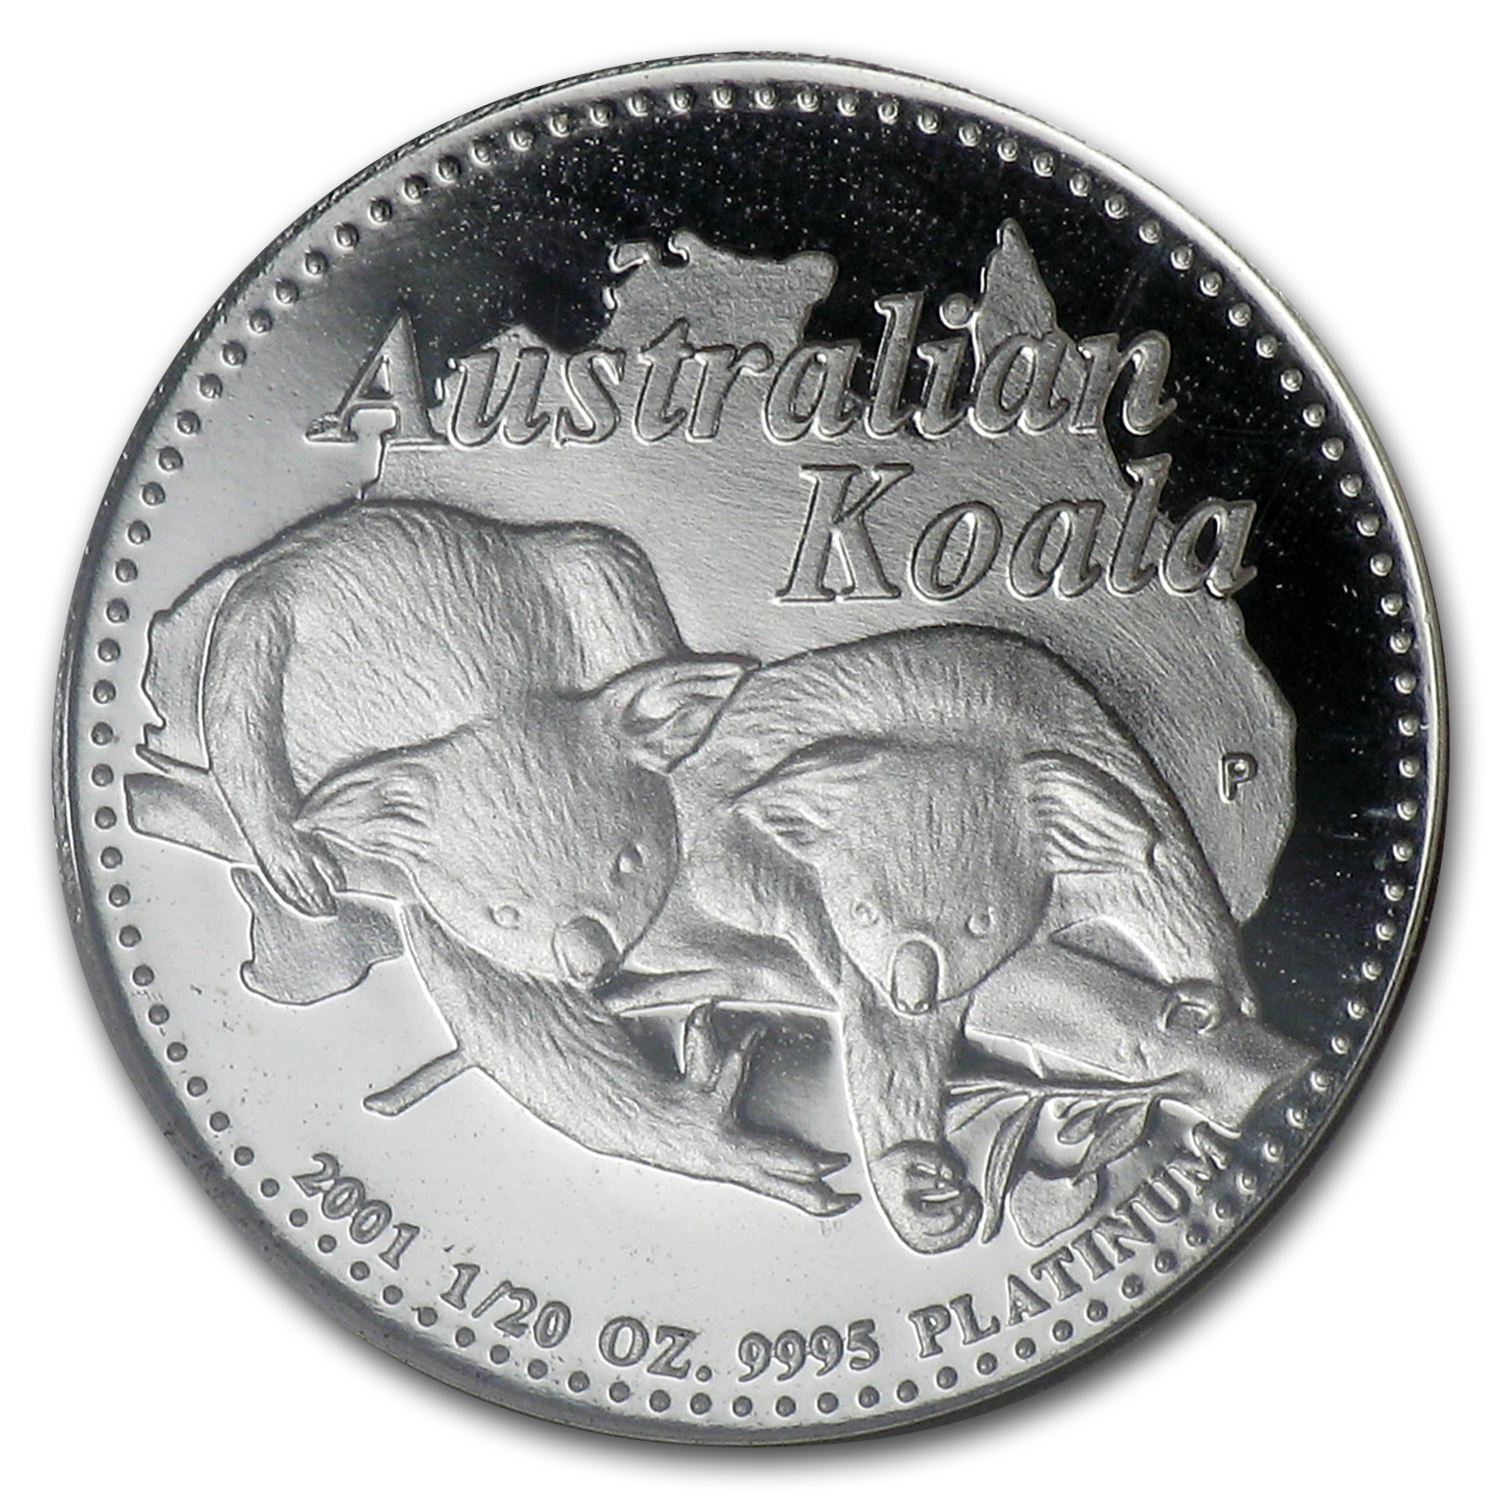 2001 Australia 5-Coin Platinum Koala Proof Set (1.9 oz)